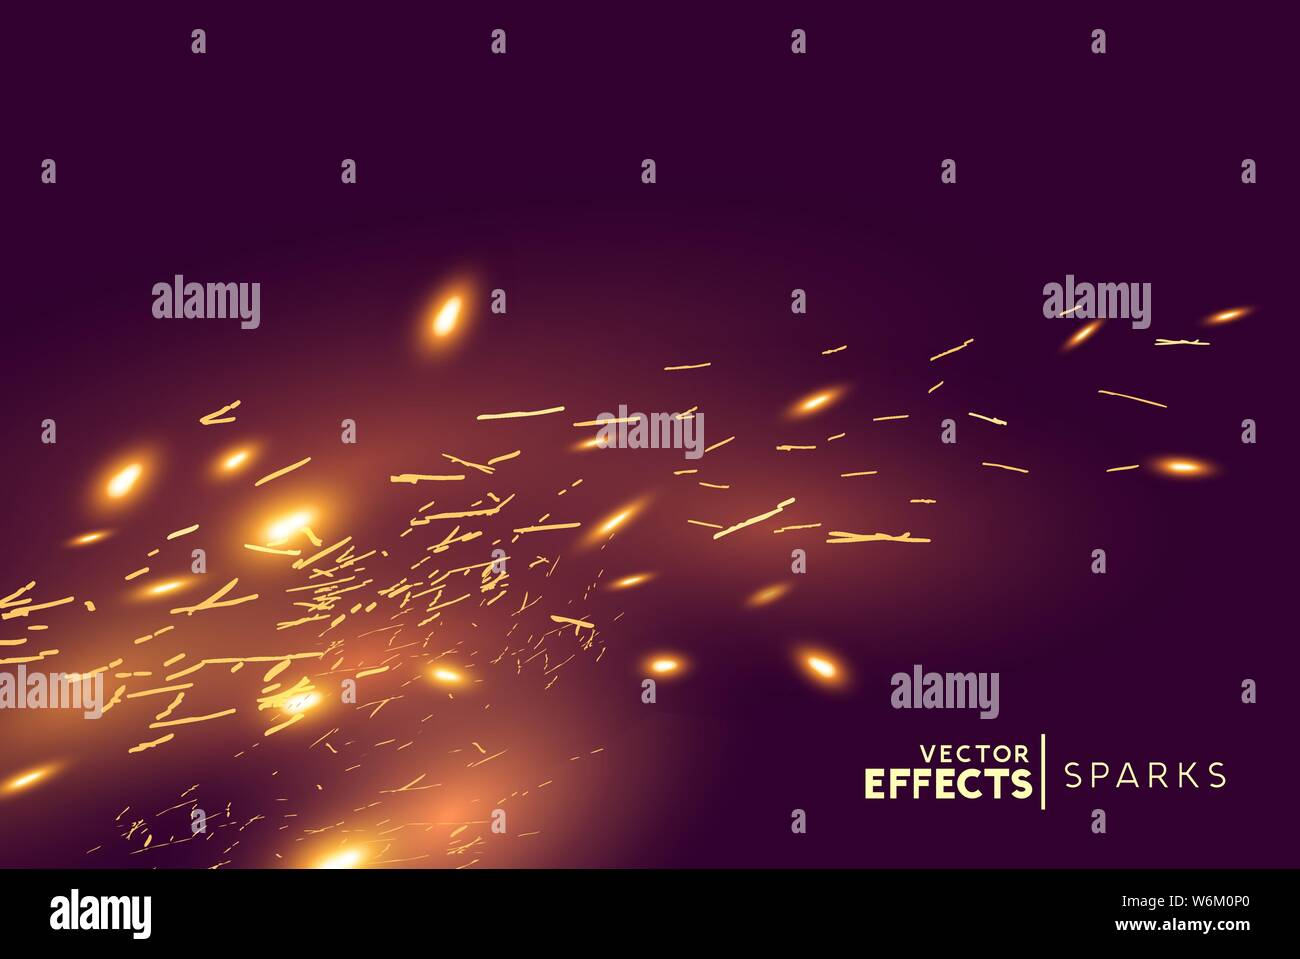 Bright glowing fire sparks blowing in the wind. Vector illustration. Stock Vector